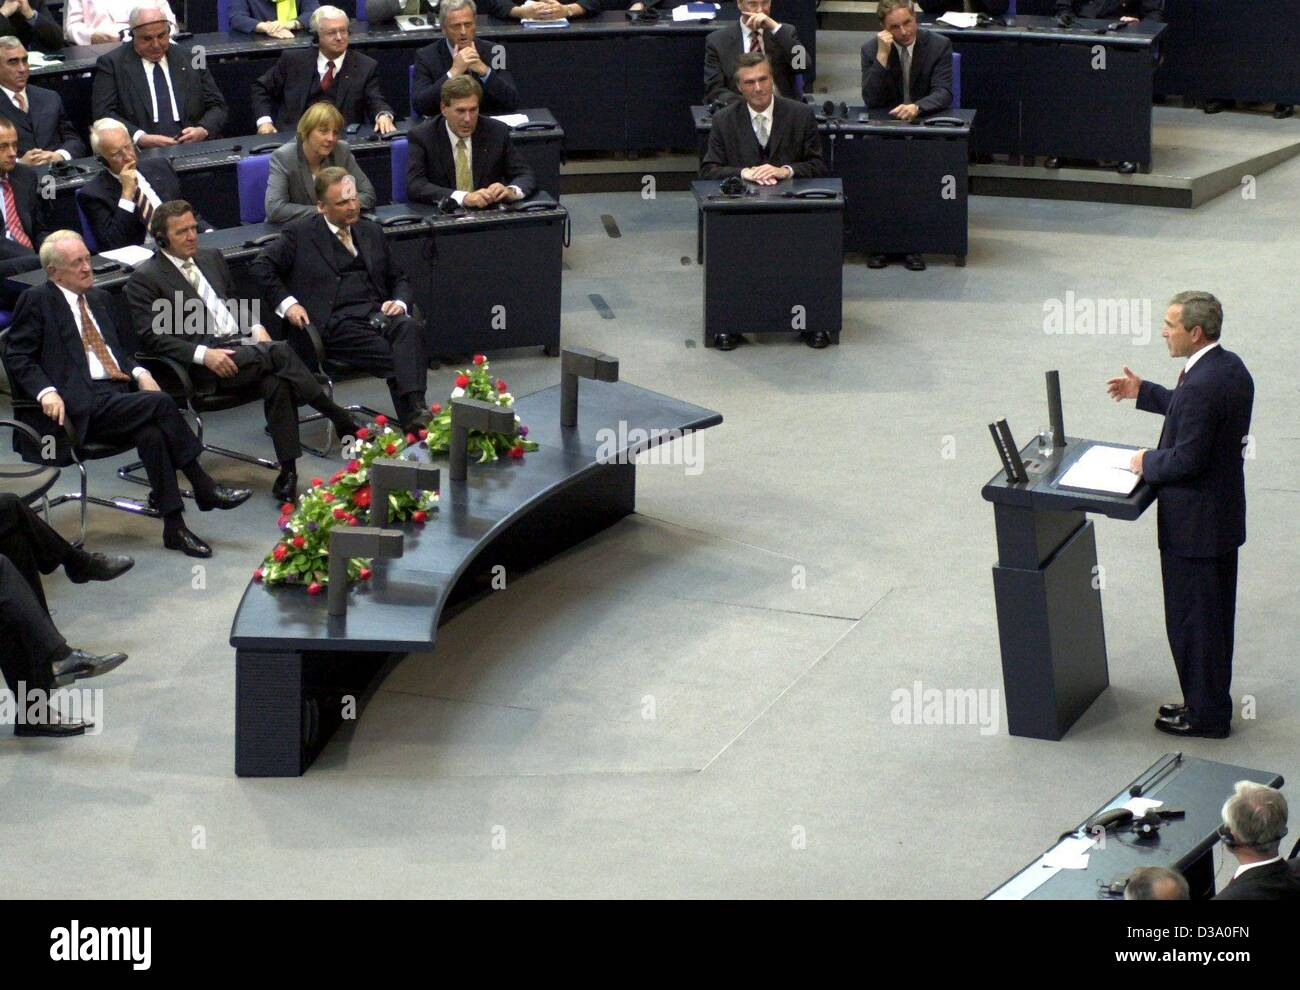 (dpa) - US President George W. Bush delivers his speech in German parliament, the Bundestag, in Berlin, 23 May 2002. He called for a joint European appearance against the 'enemies of freedom'. Bush came on a one-week visit to Europe, Germany being his first stop. Stock Photo